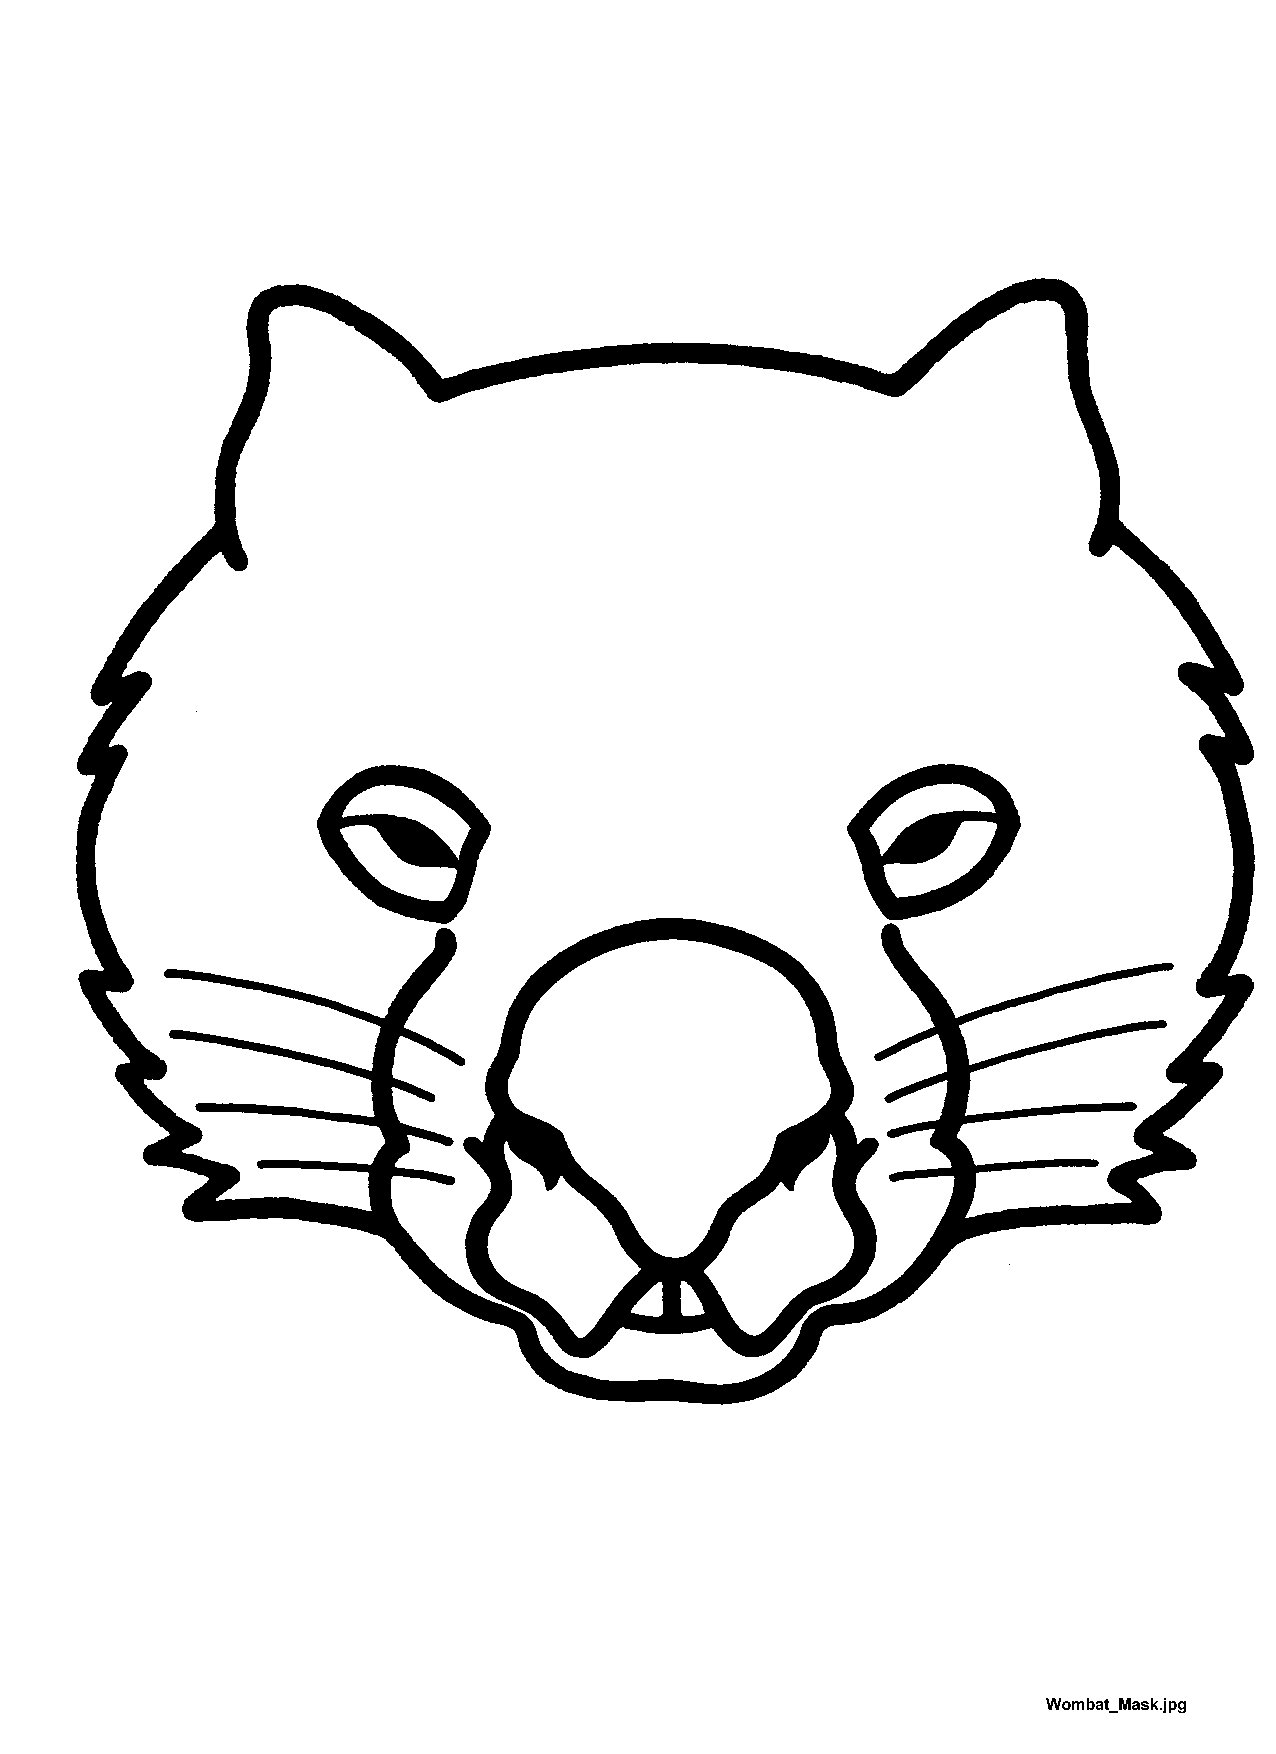 Printable Mask Template Printable Wombat Mask  Wombat Unit  Australia Theme  Pinterest .